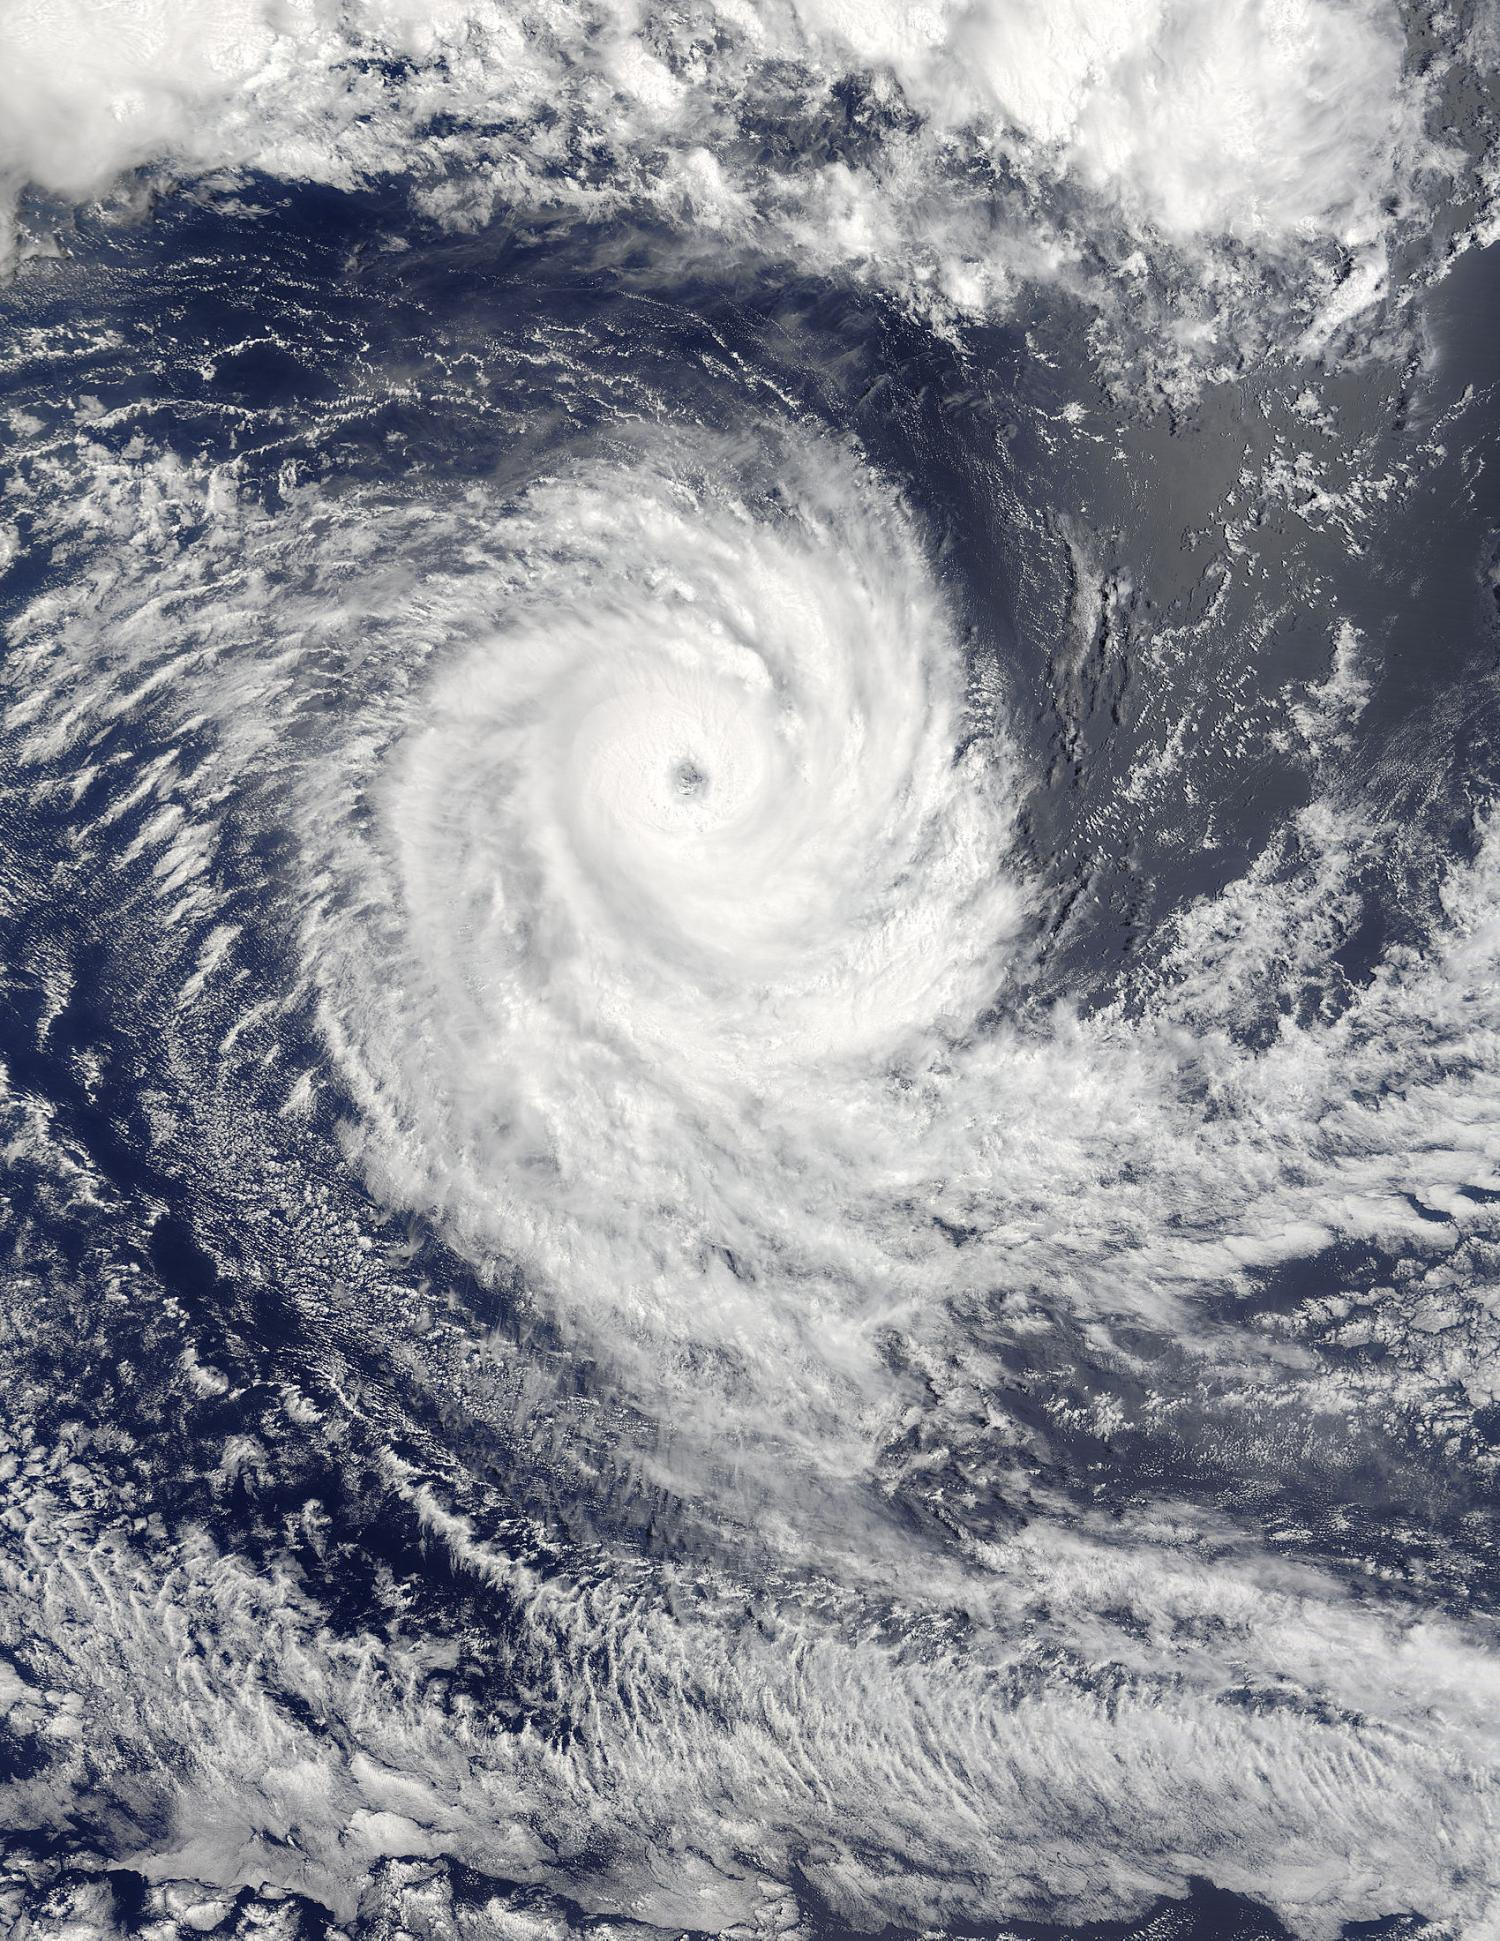 NASA's Terra satellite captured this visible image of Tropical Cyclone ...